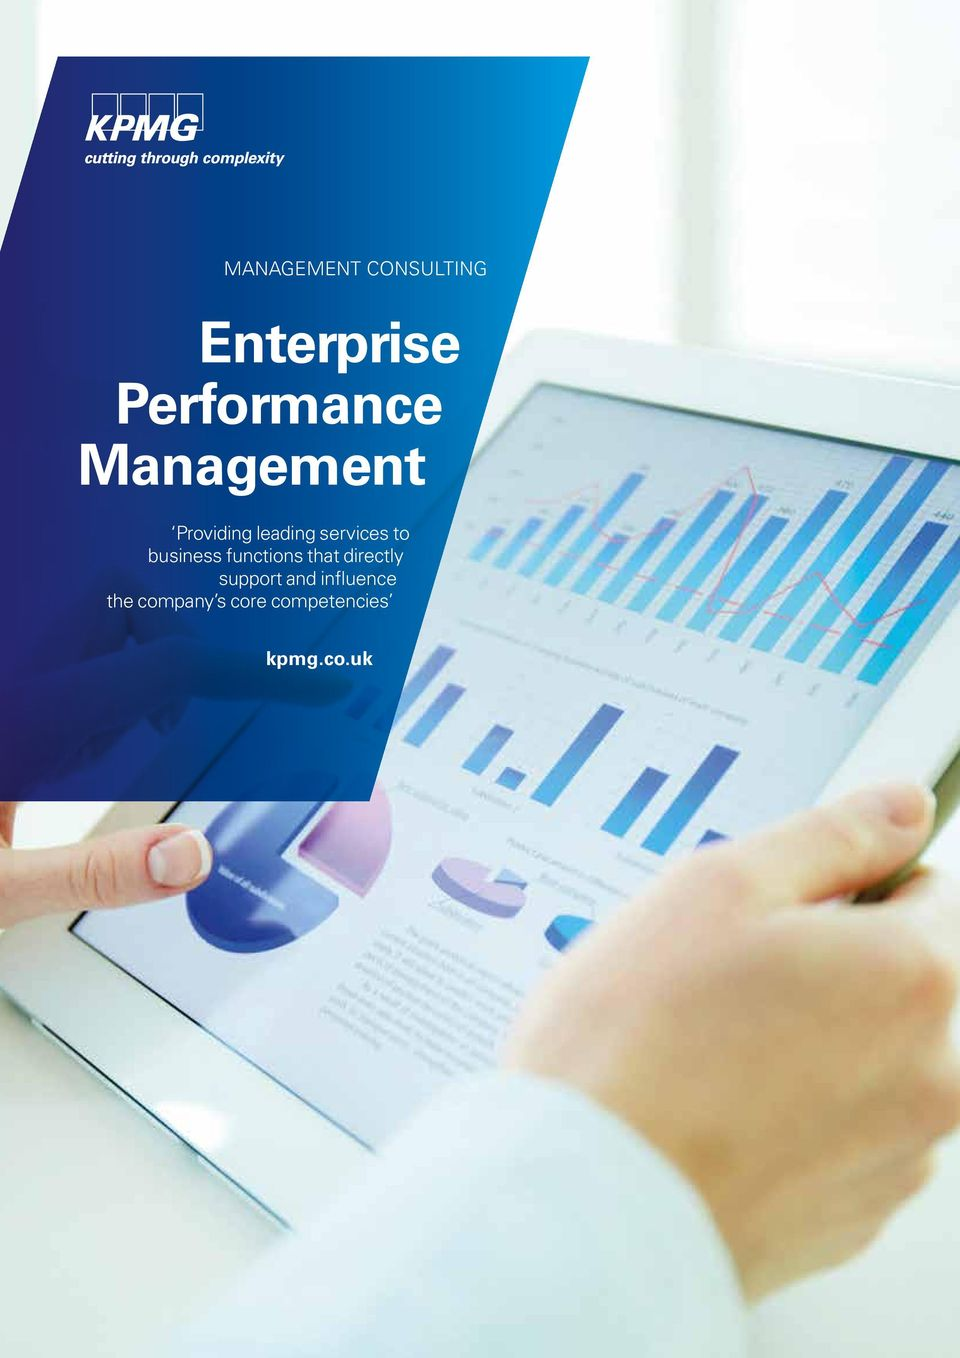 entrepreneurial competencies and business performance commerce essay Competencies significantly predict venture performance  entrepreneurial  competencies and business success is more prominent in a dynamic   registered smes in nigeria) as well as the capital city (lagos) representing the  commercial nerve  summary 0089 0000 model 1 constant 1350 0367  3664 0000 entr.